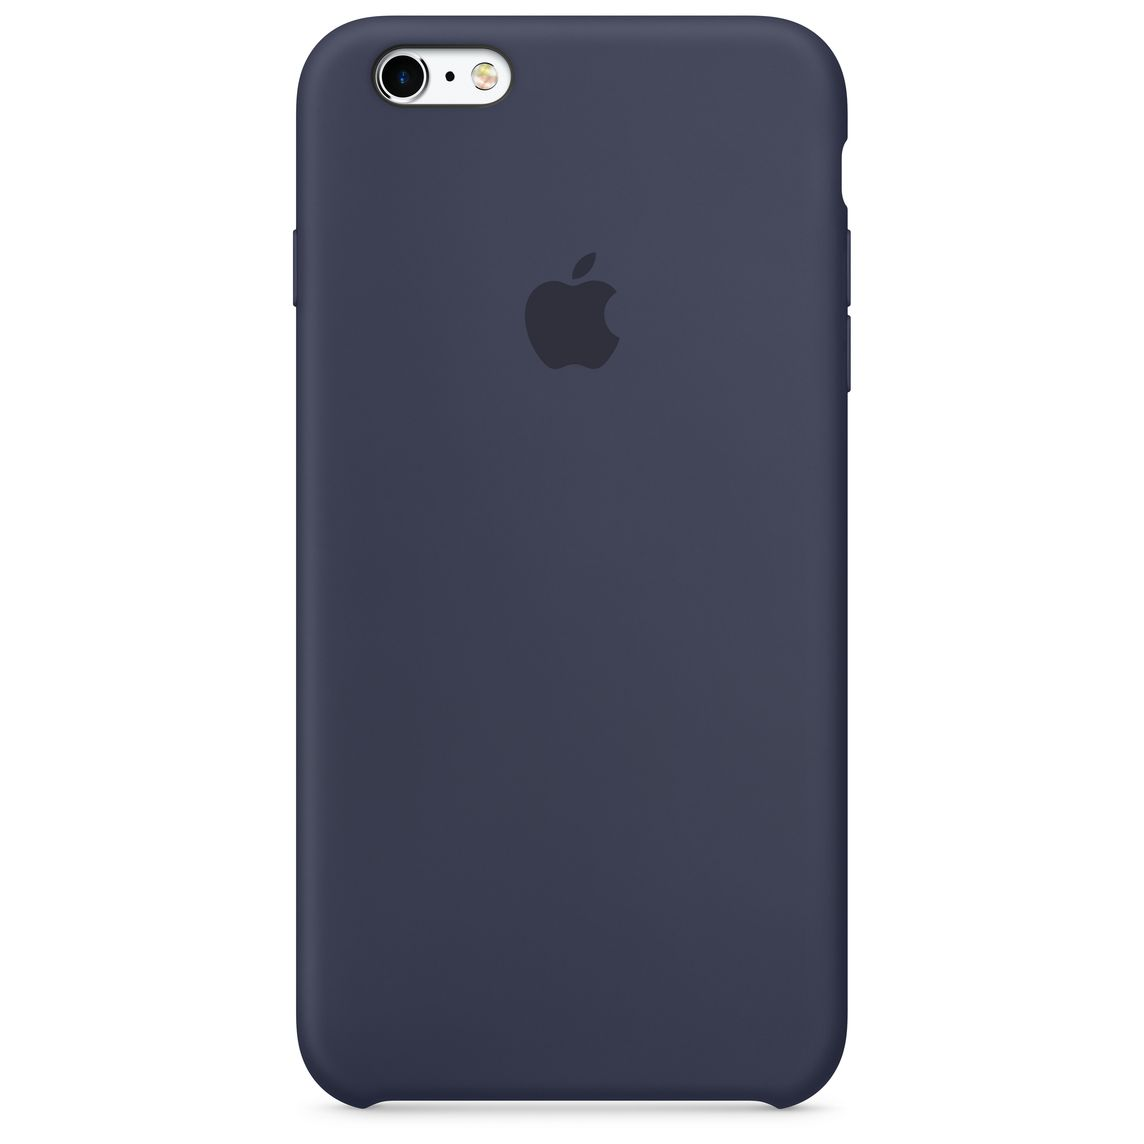 on sale 7120d d5a94 iPhone 6 Plus / 6s Plus Silicone Case - Midnight Blue